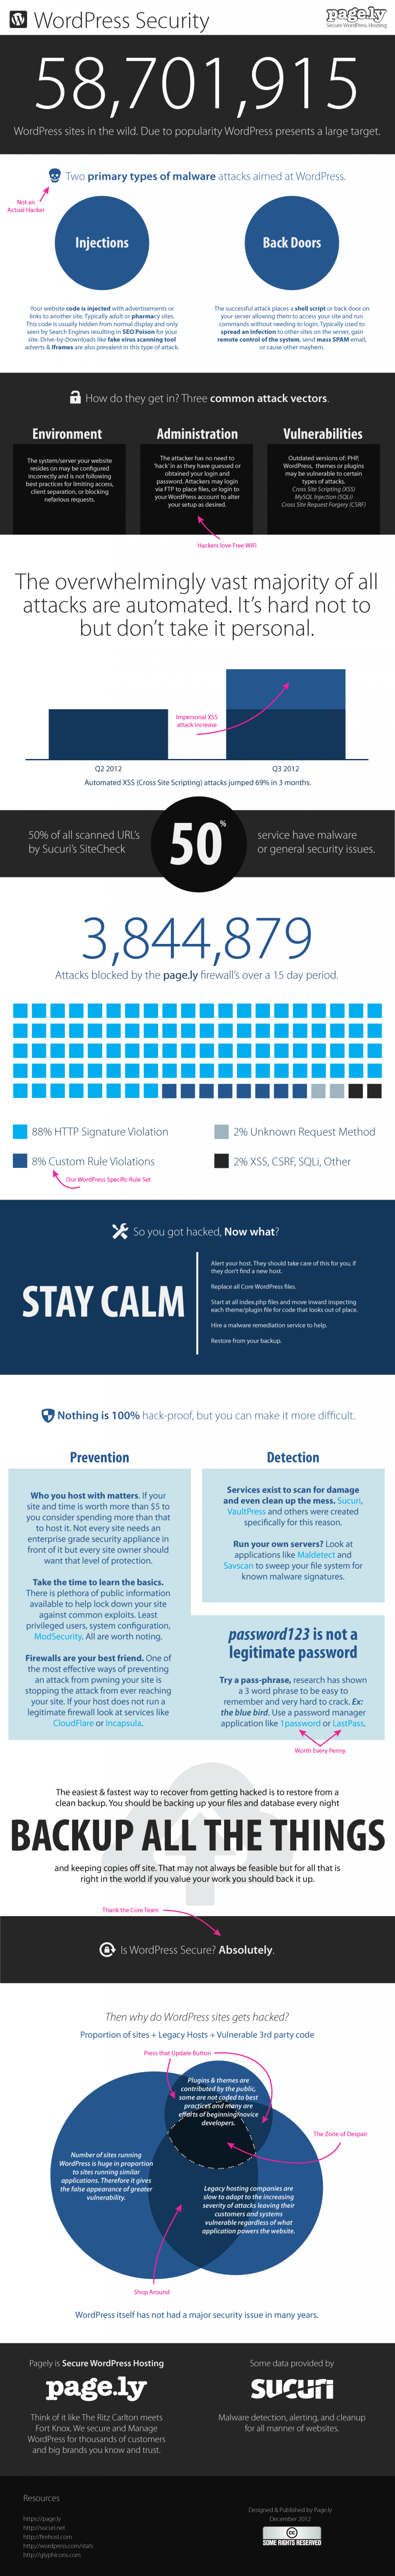 WordPress Security Infographic